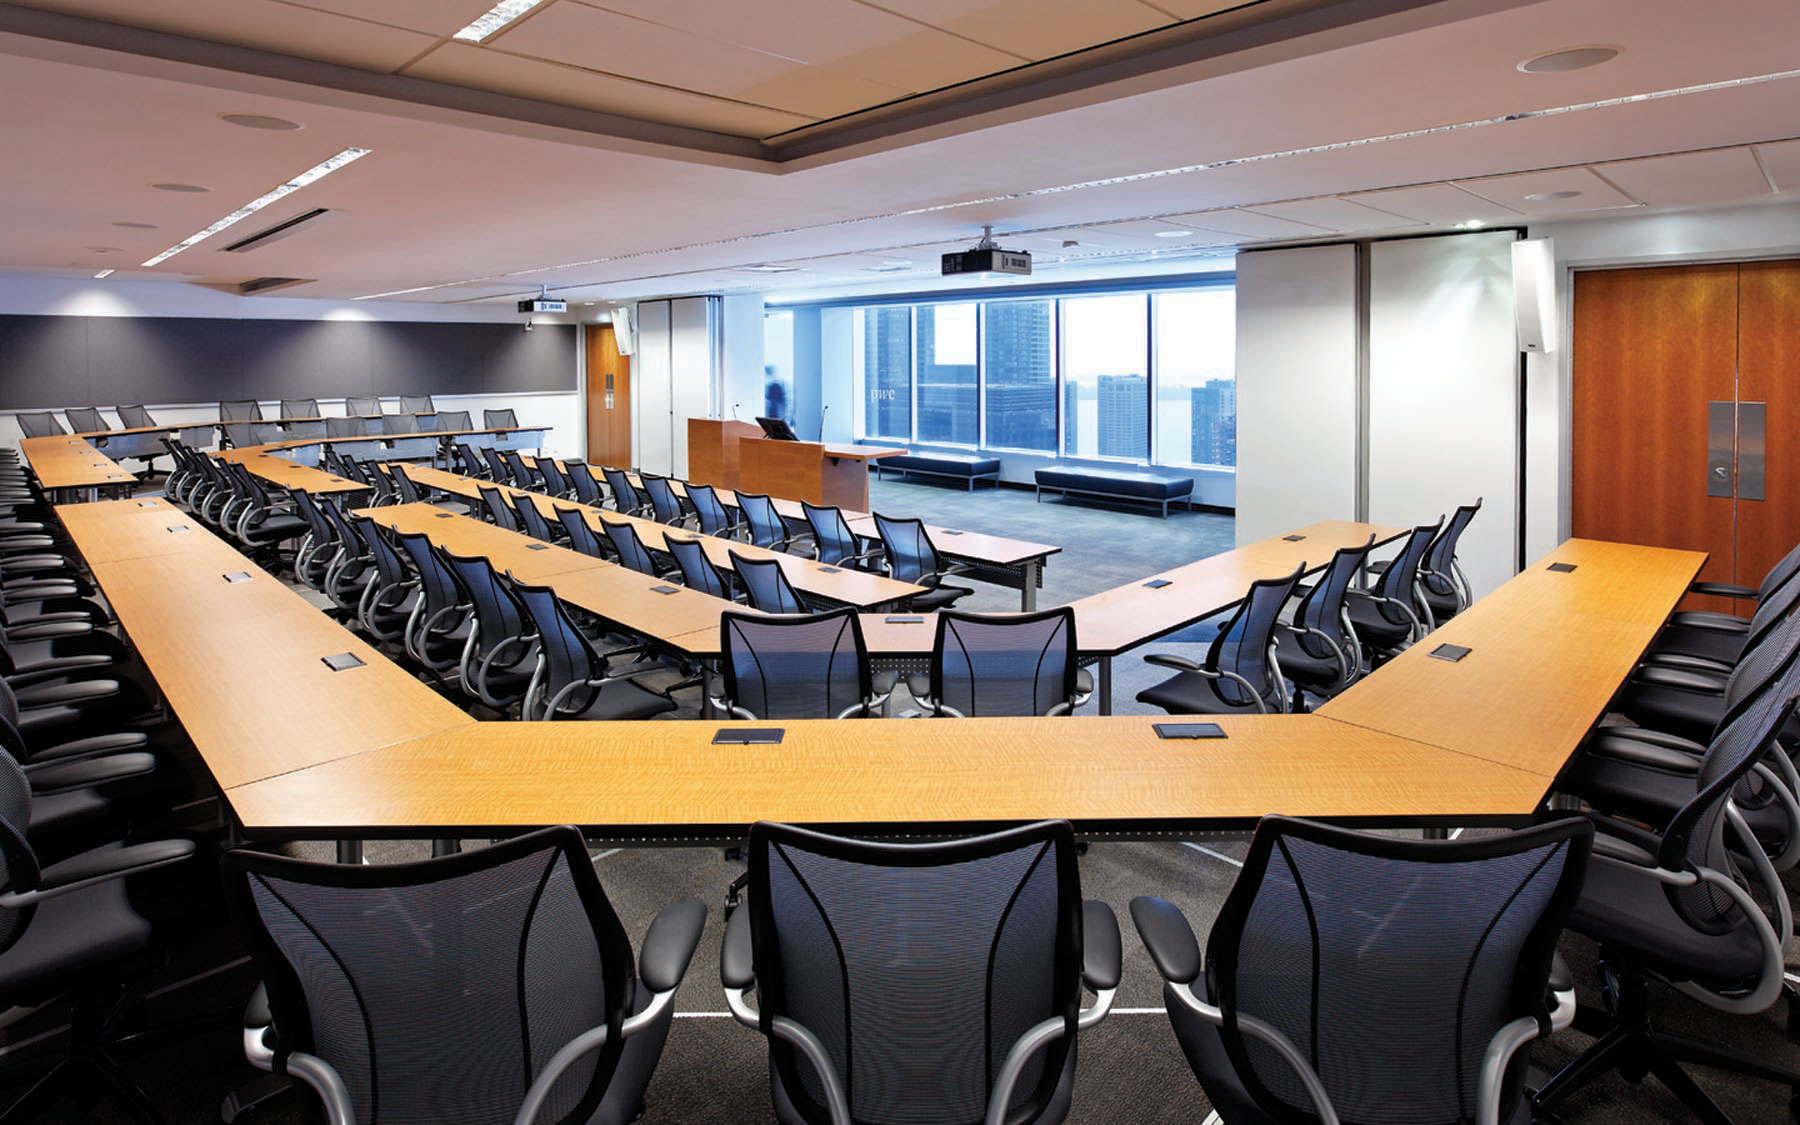 Lecture hall with four tier seating with black mesh back chairs, podium, overhead projector and perimeter windows with views of lake and city